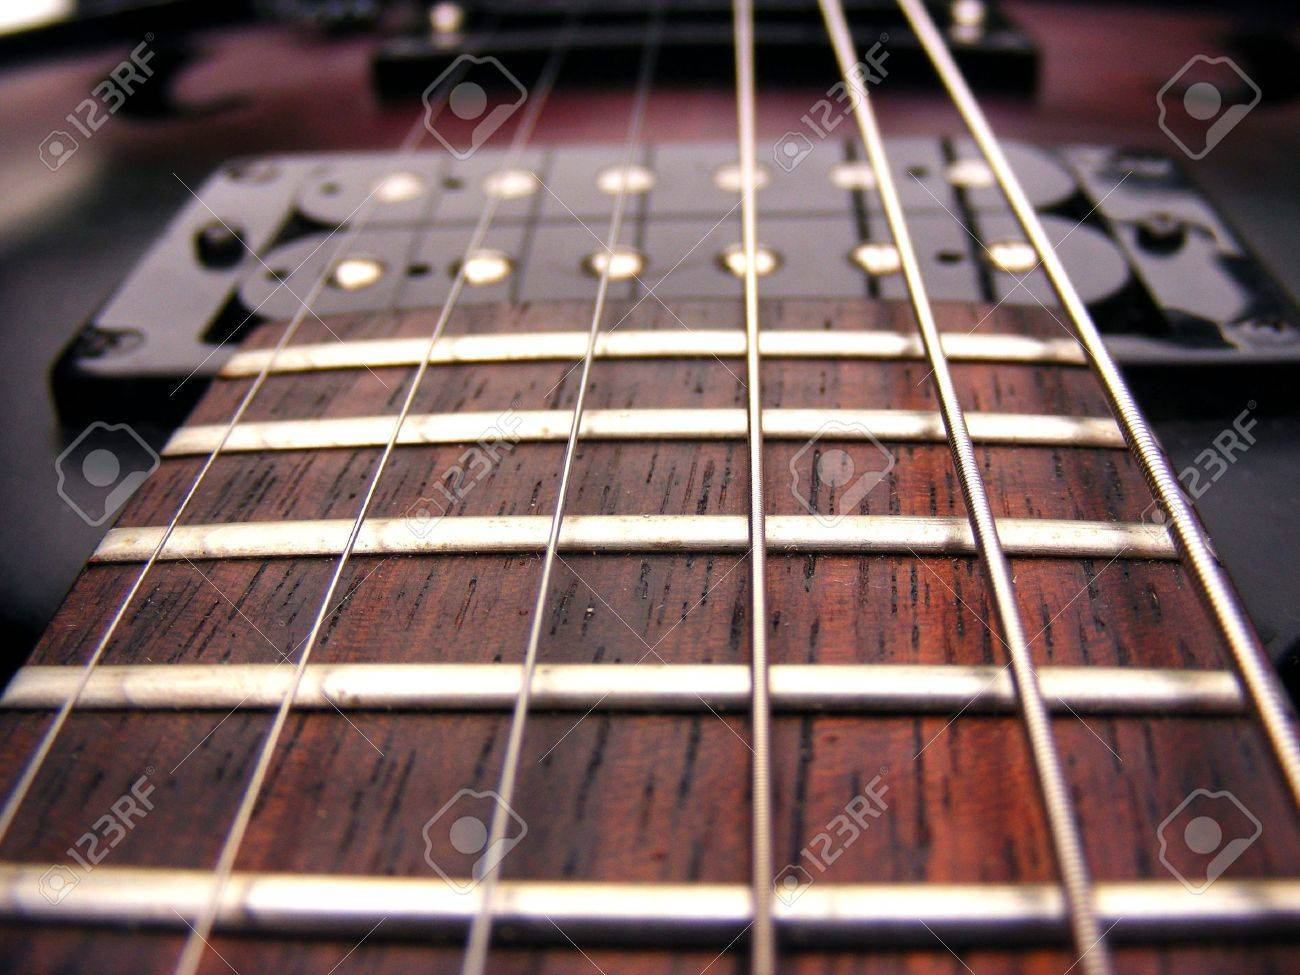 Guitar Strings Frets And Pick Ups Electric Guitar Stock Photo